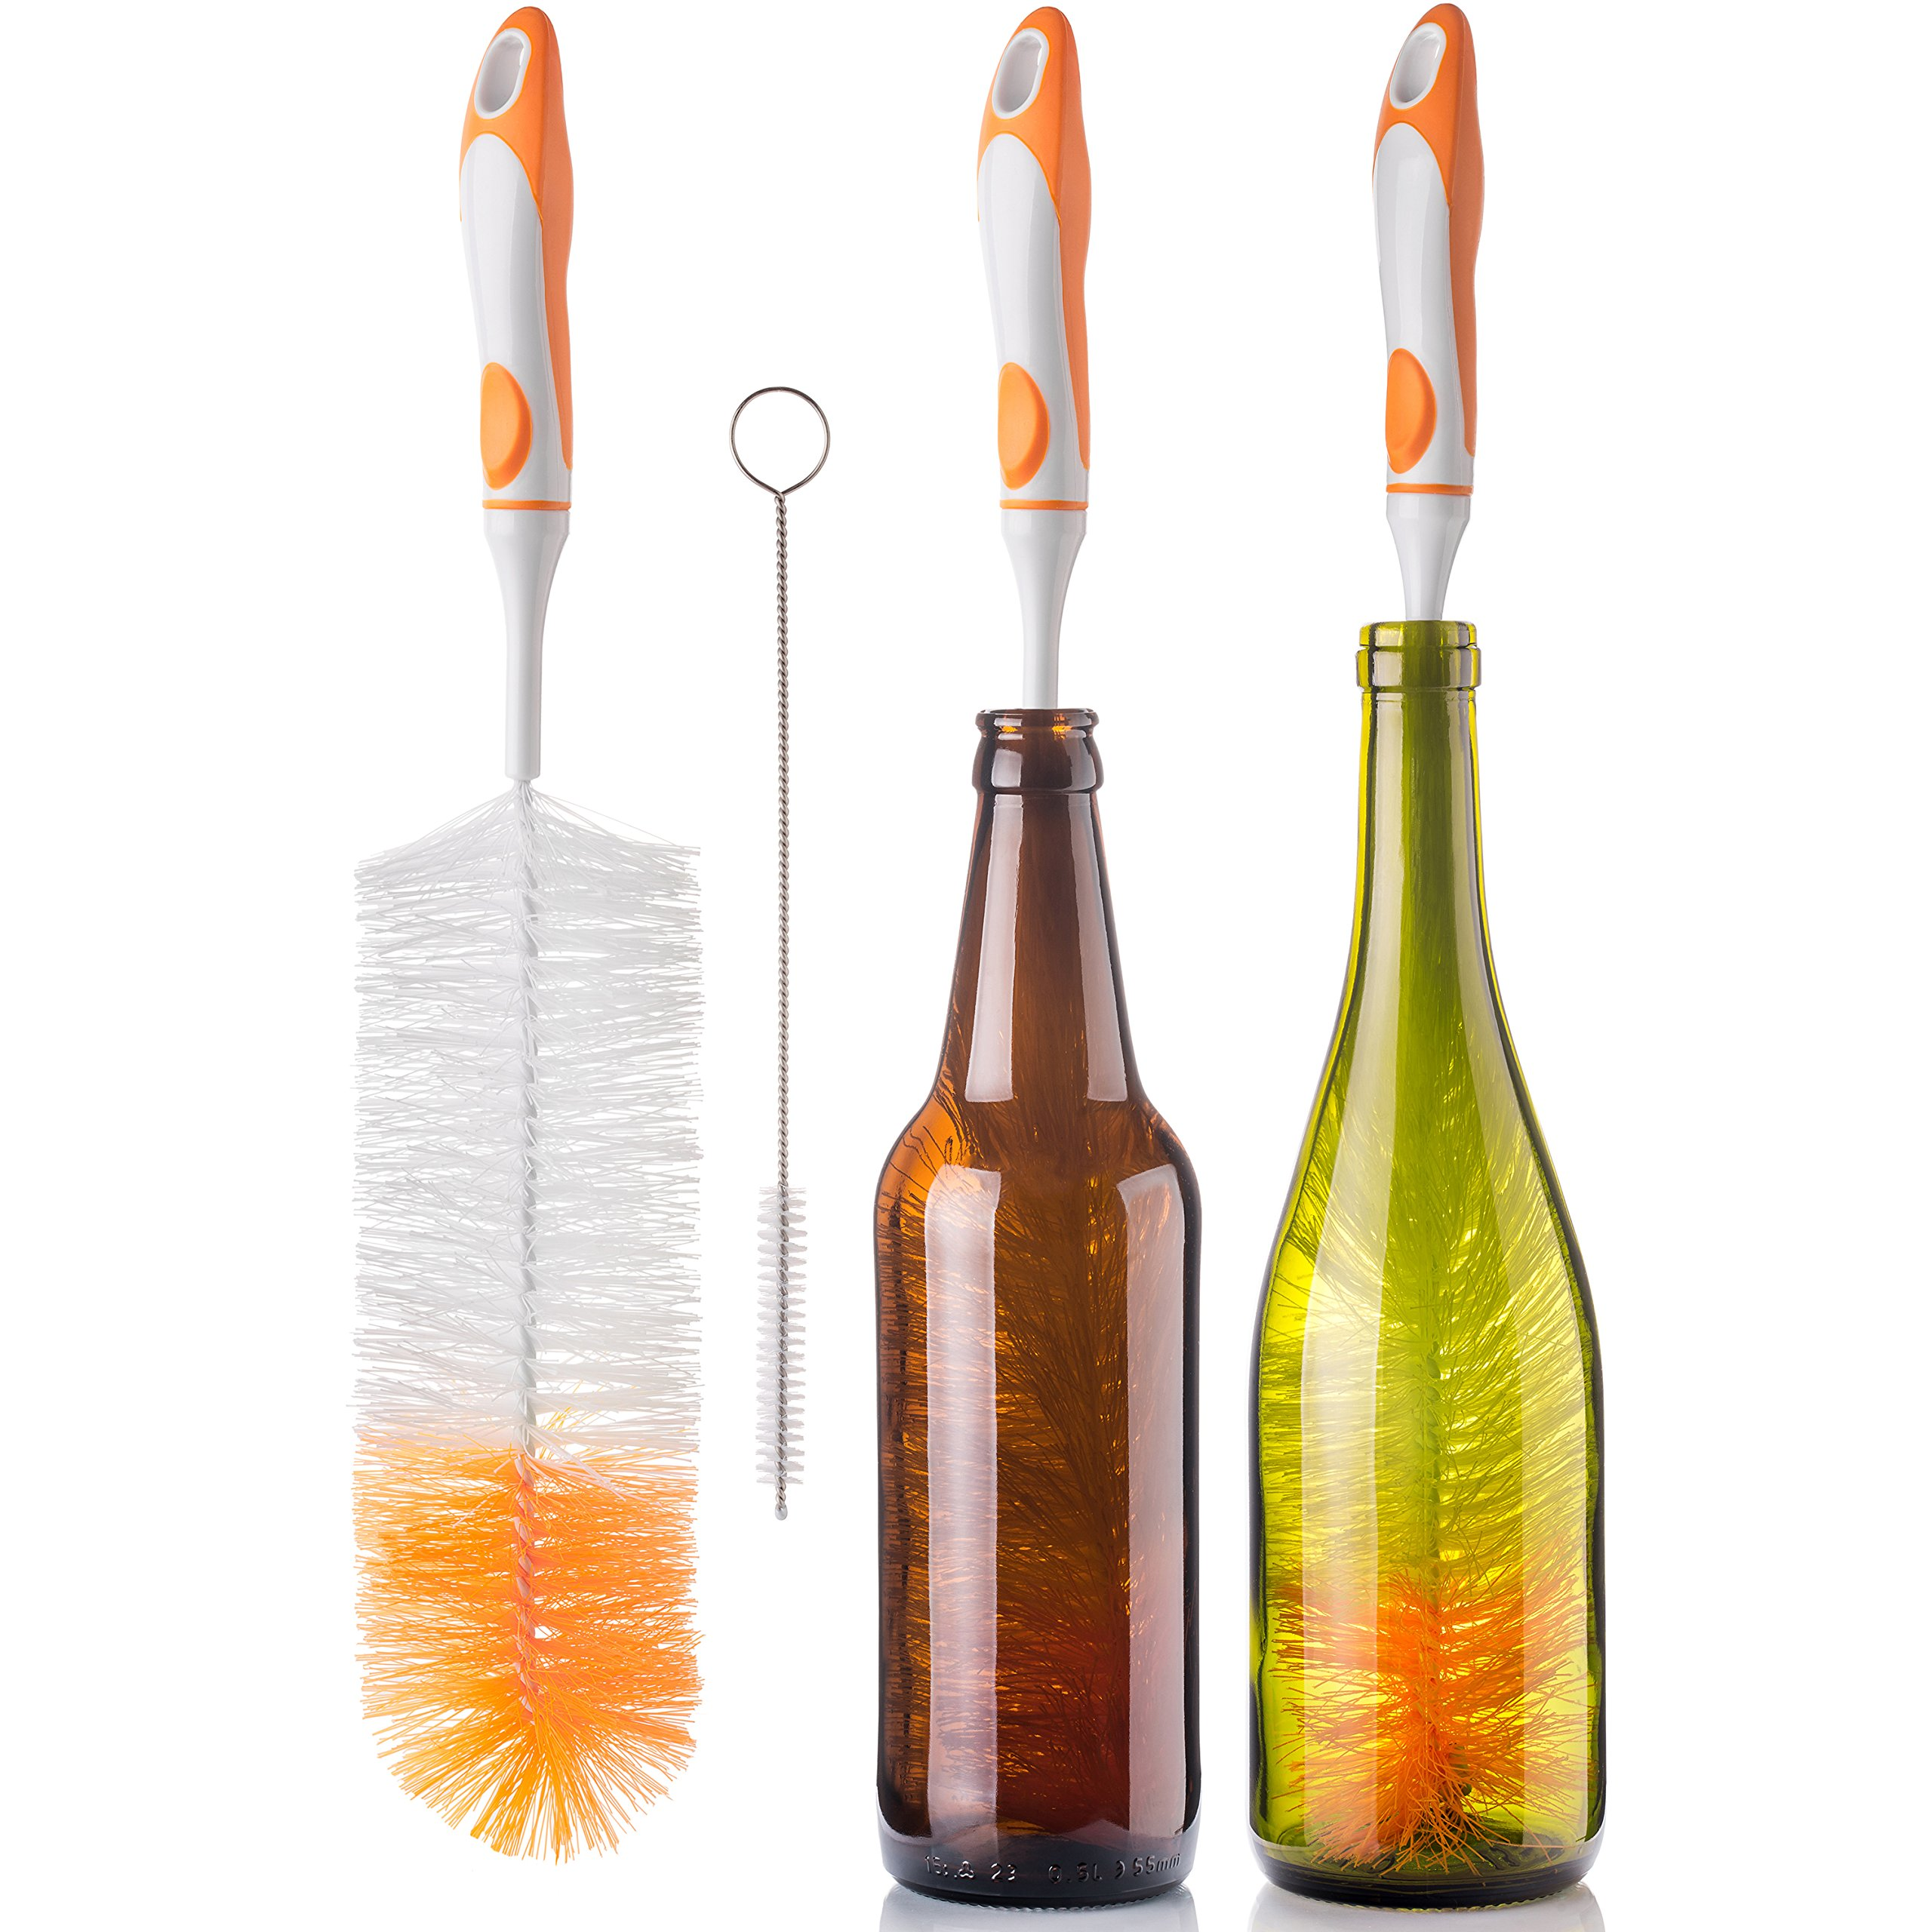 Bottle Brush Cleaner Set by Atmiko - Kitchen Cleaning Supplies with Good Grip Soft Handle to Clean any Long Narrow Neck Beer Wine Kombucha Bottles Decanters Jugs + Small Straw Washing Brush